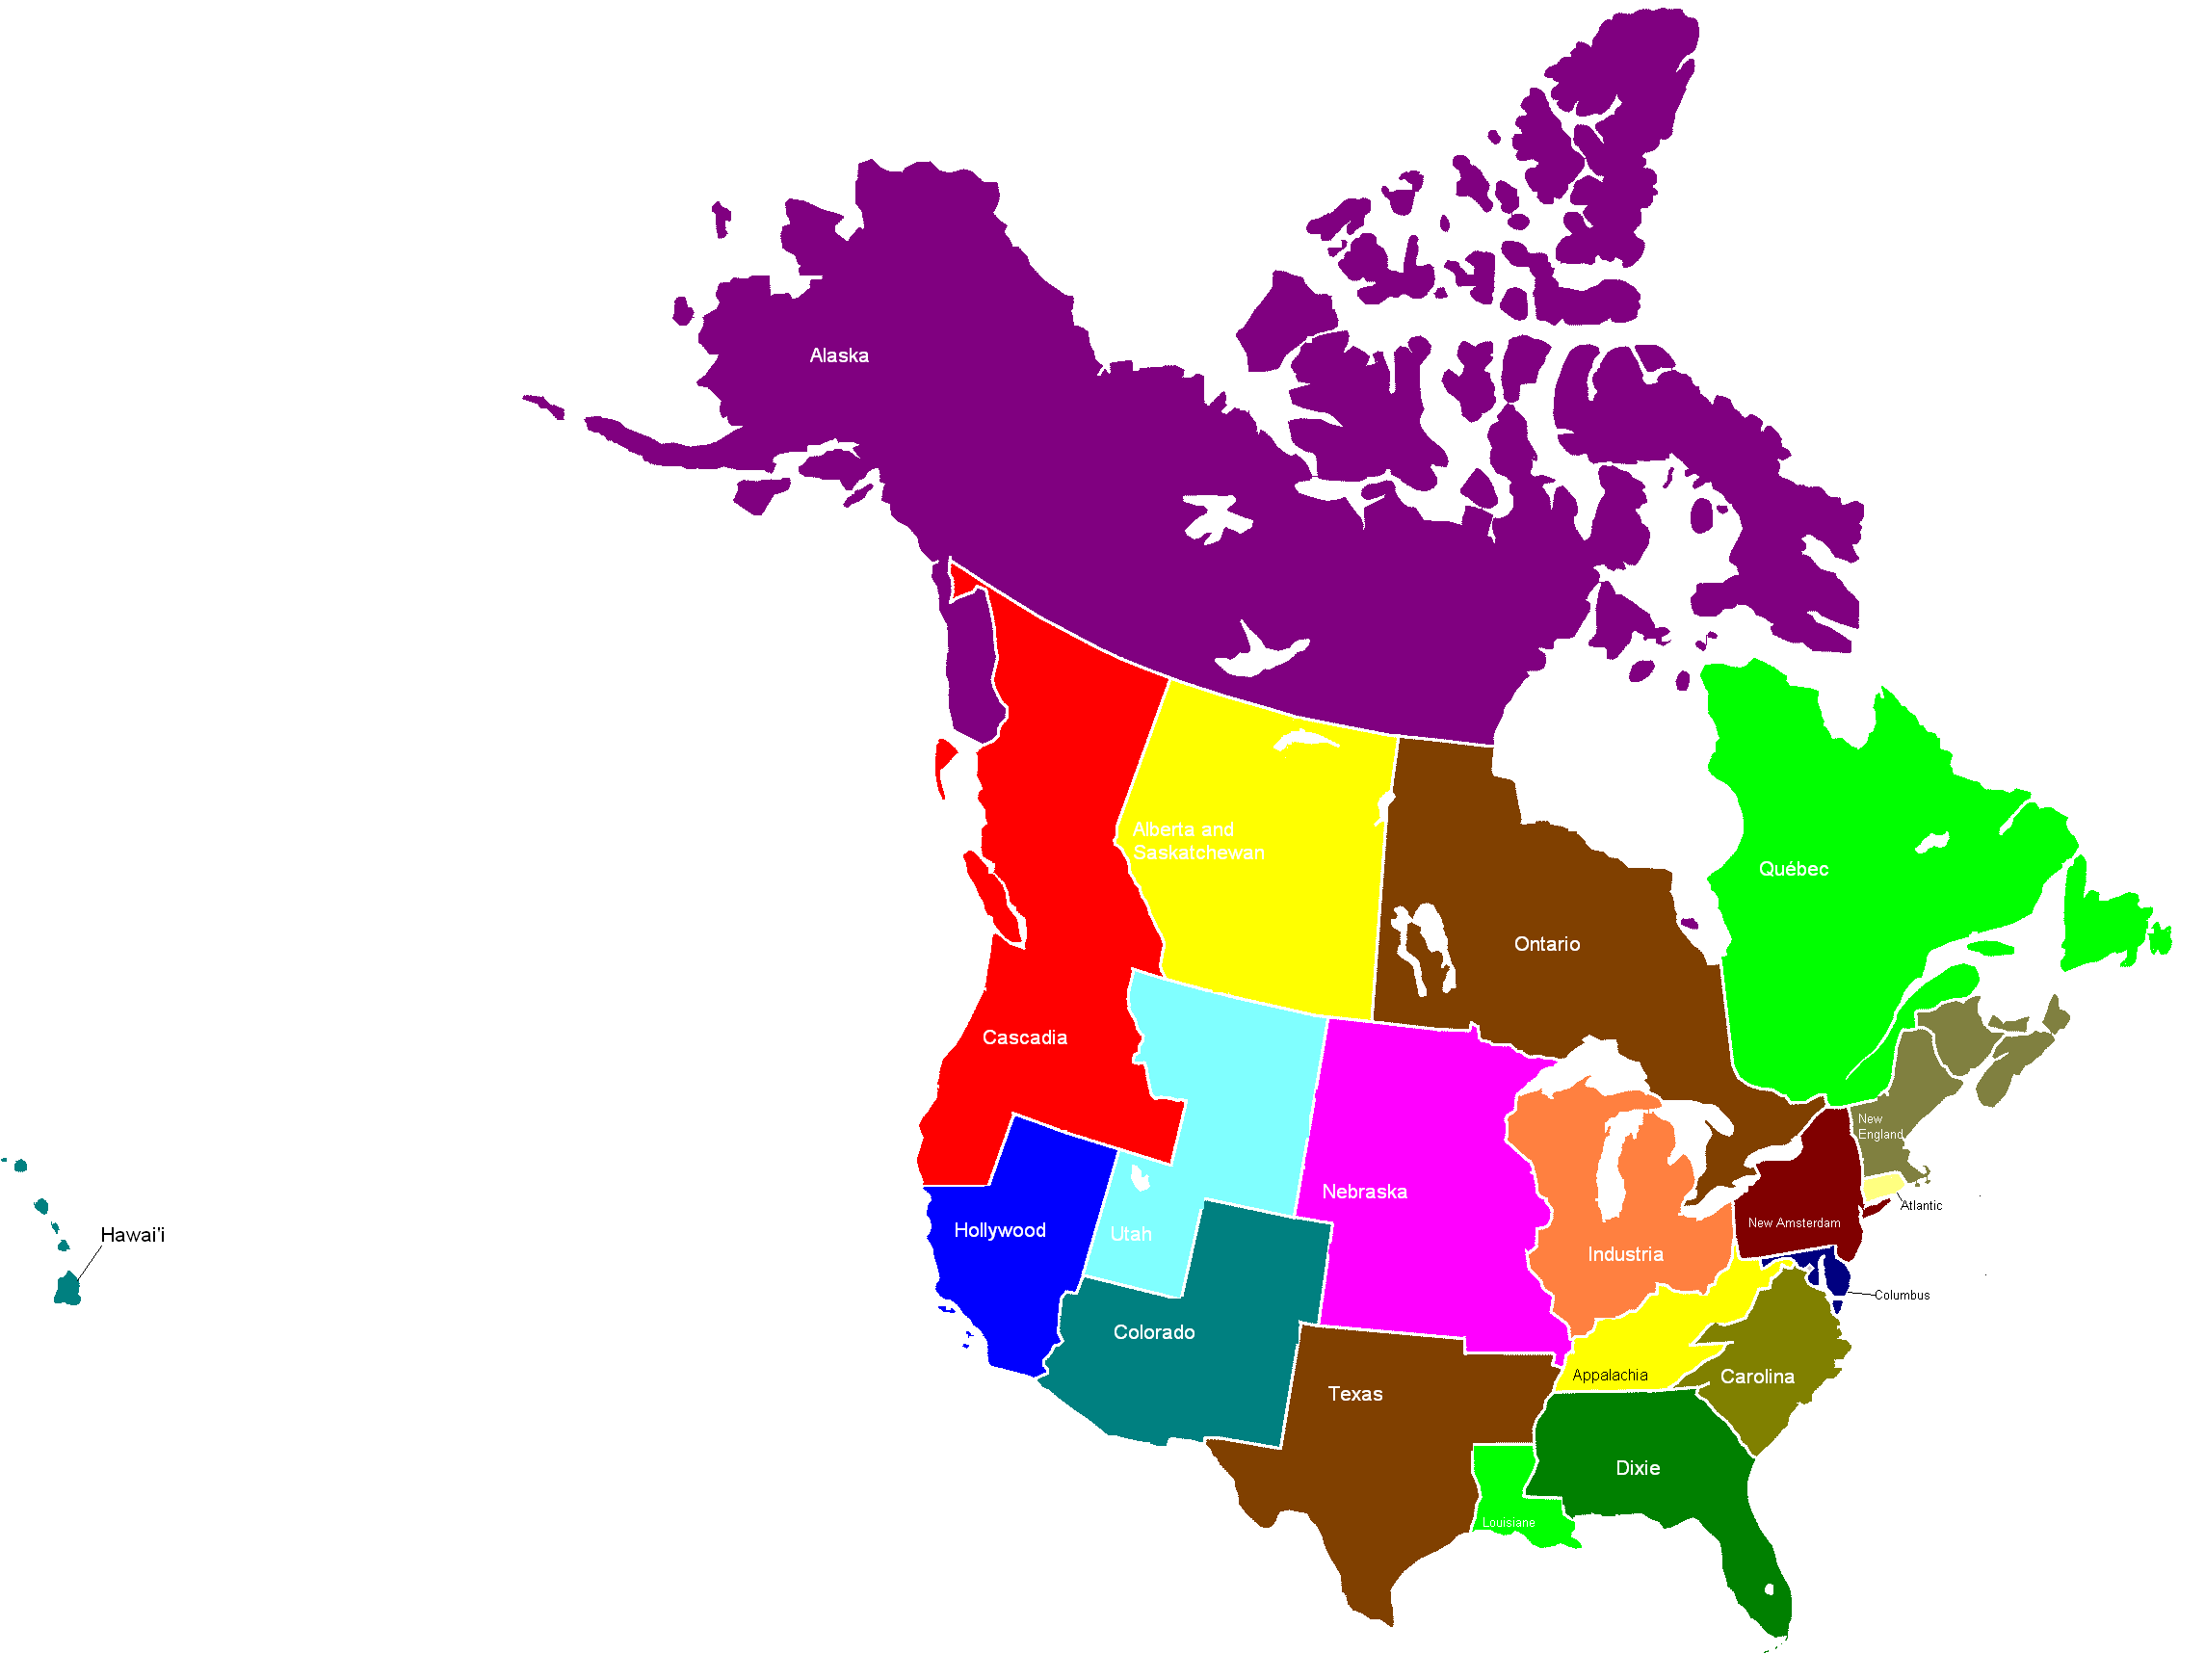 Httpssmediacacheakpinimgcomoriginalsd - Map of canada provinces and us states